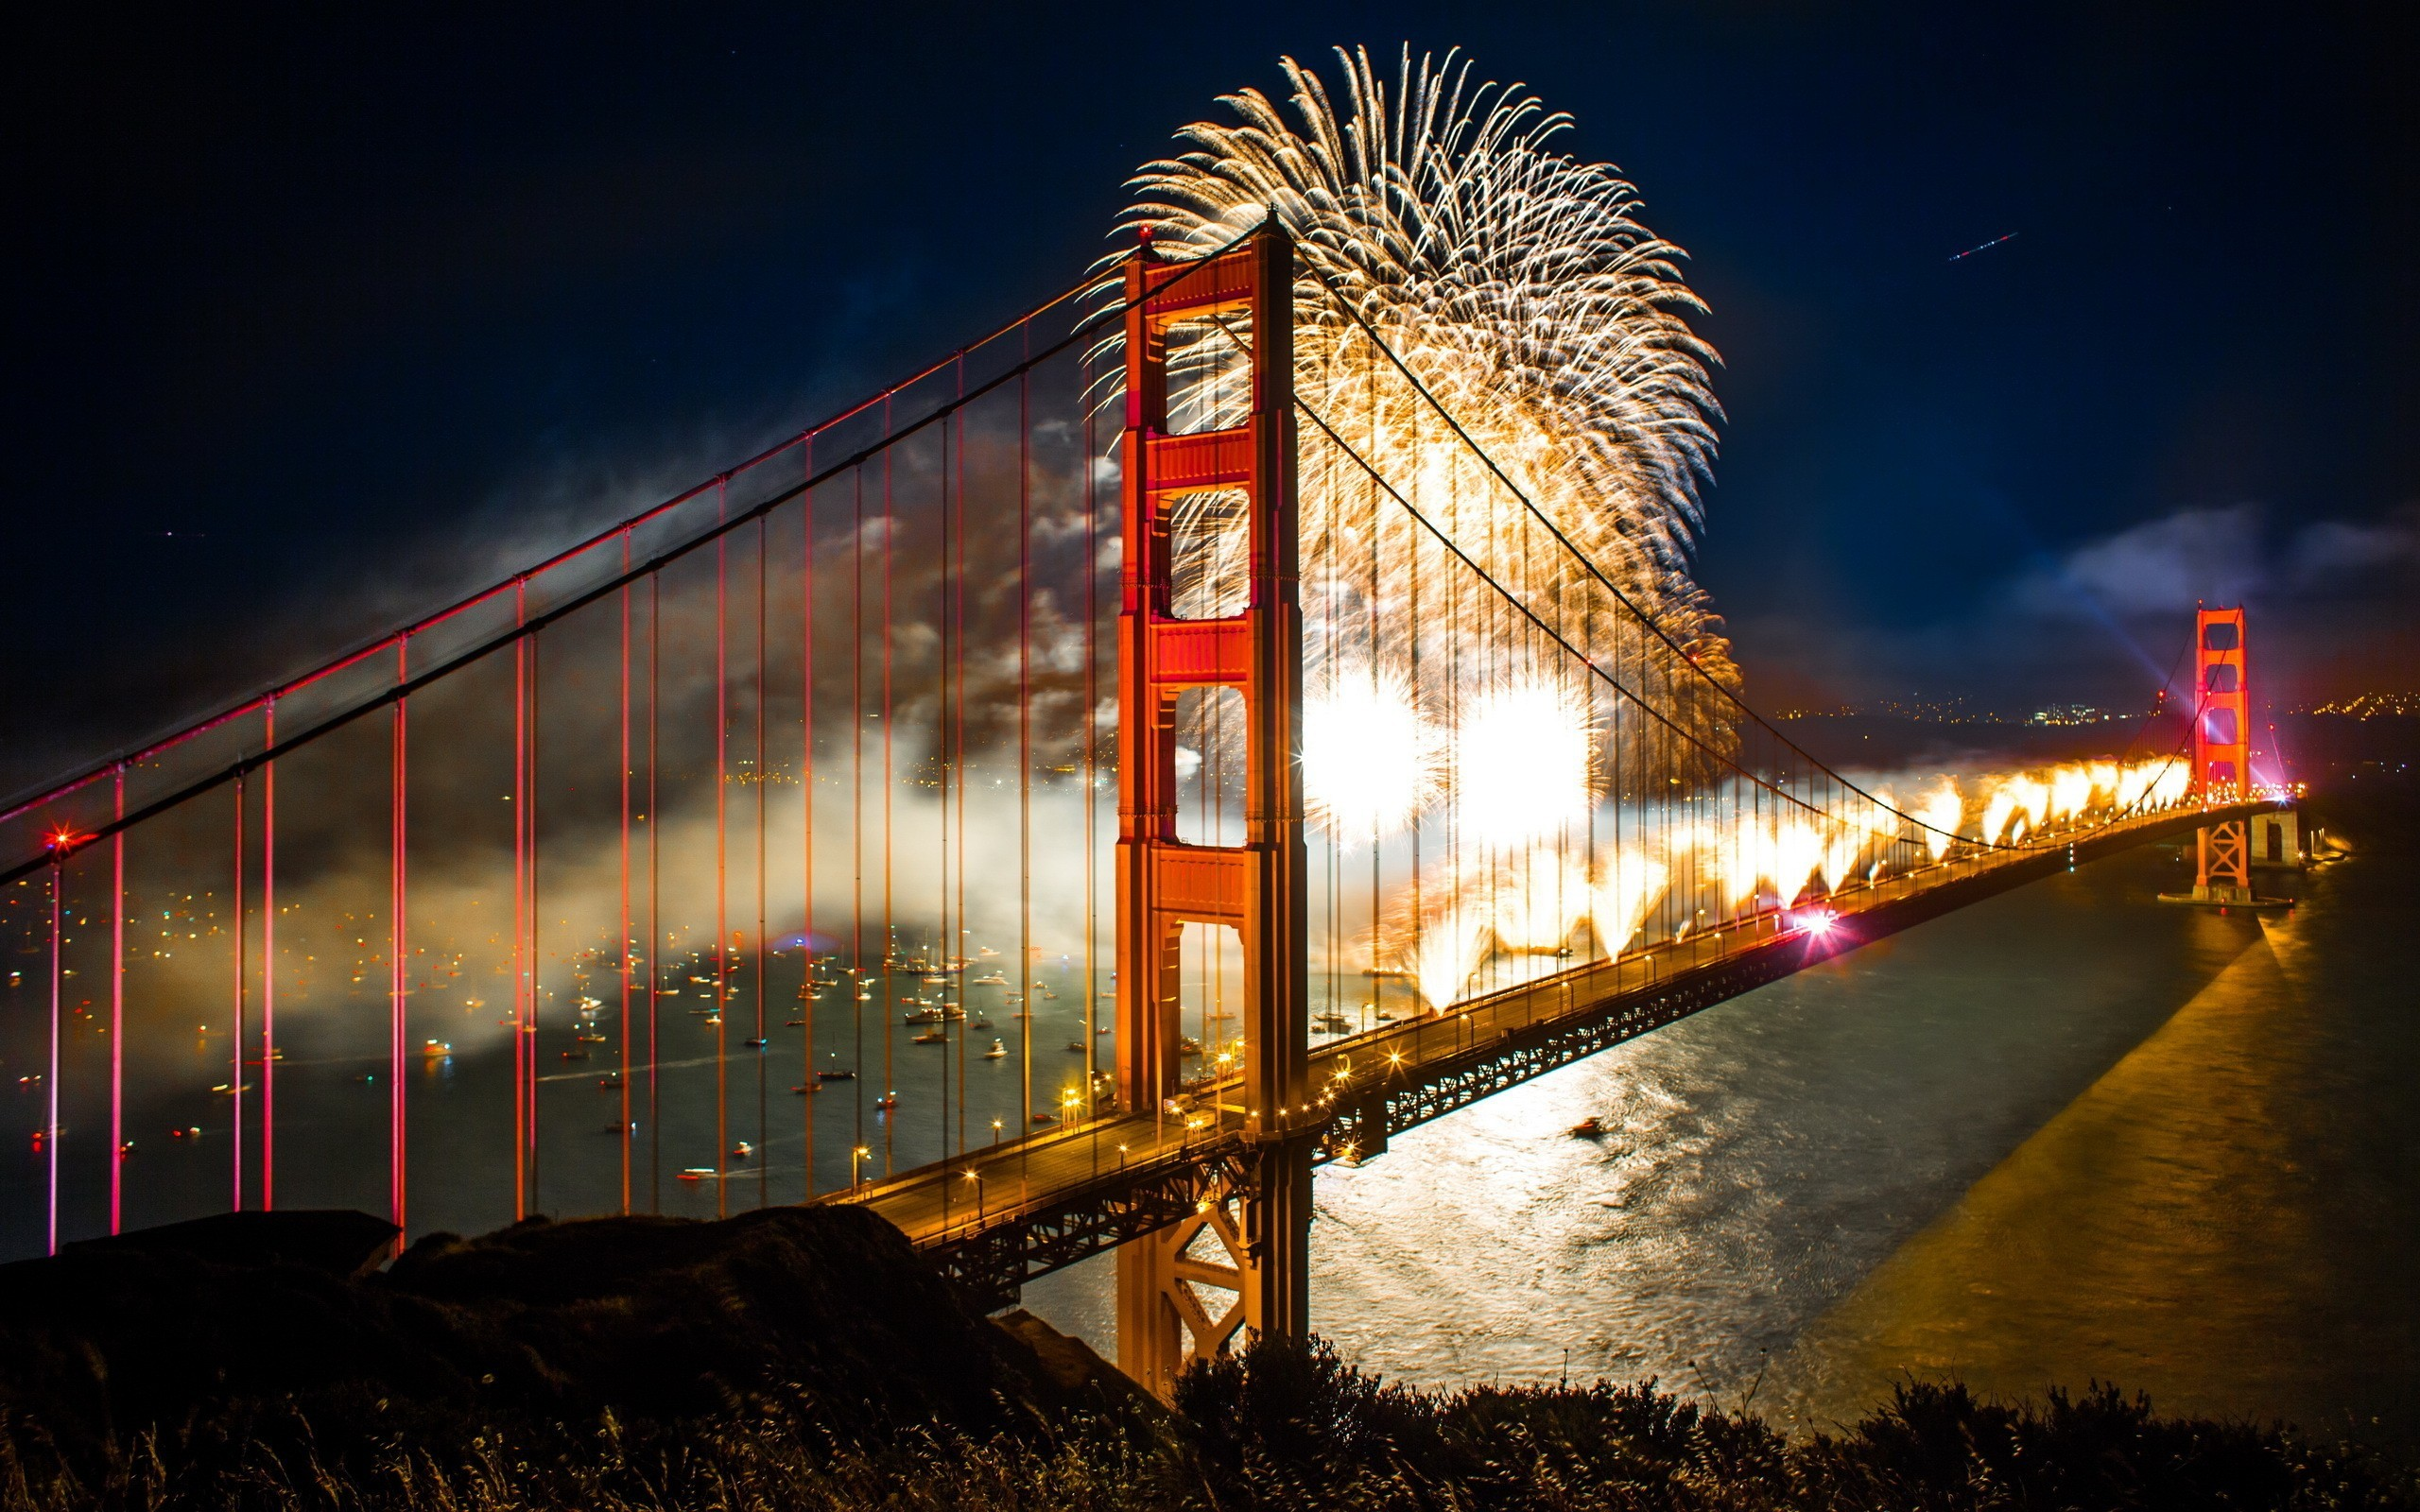 2560x1600 4th of July Celebration Fireworks, Golden Gate Bridge, San Francisco